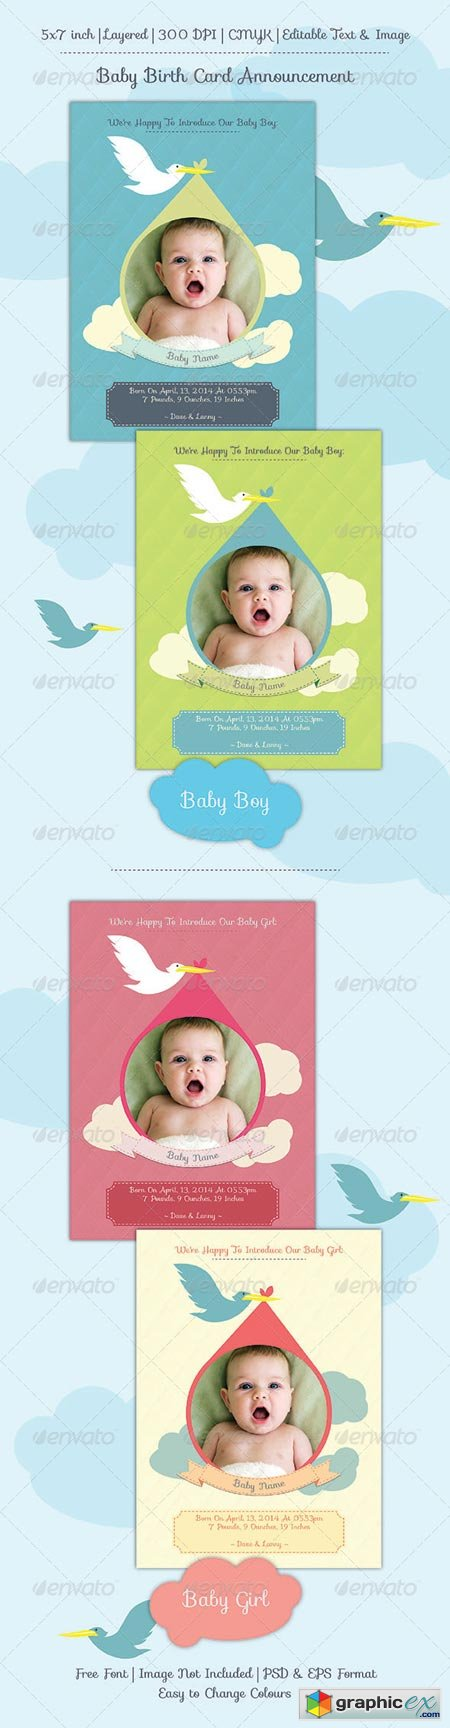 Baby Birth Announcement Card 6899658